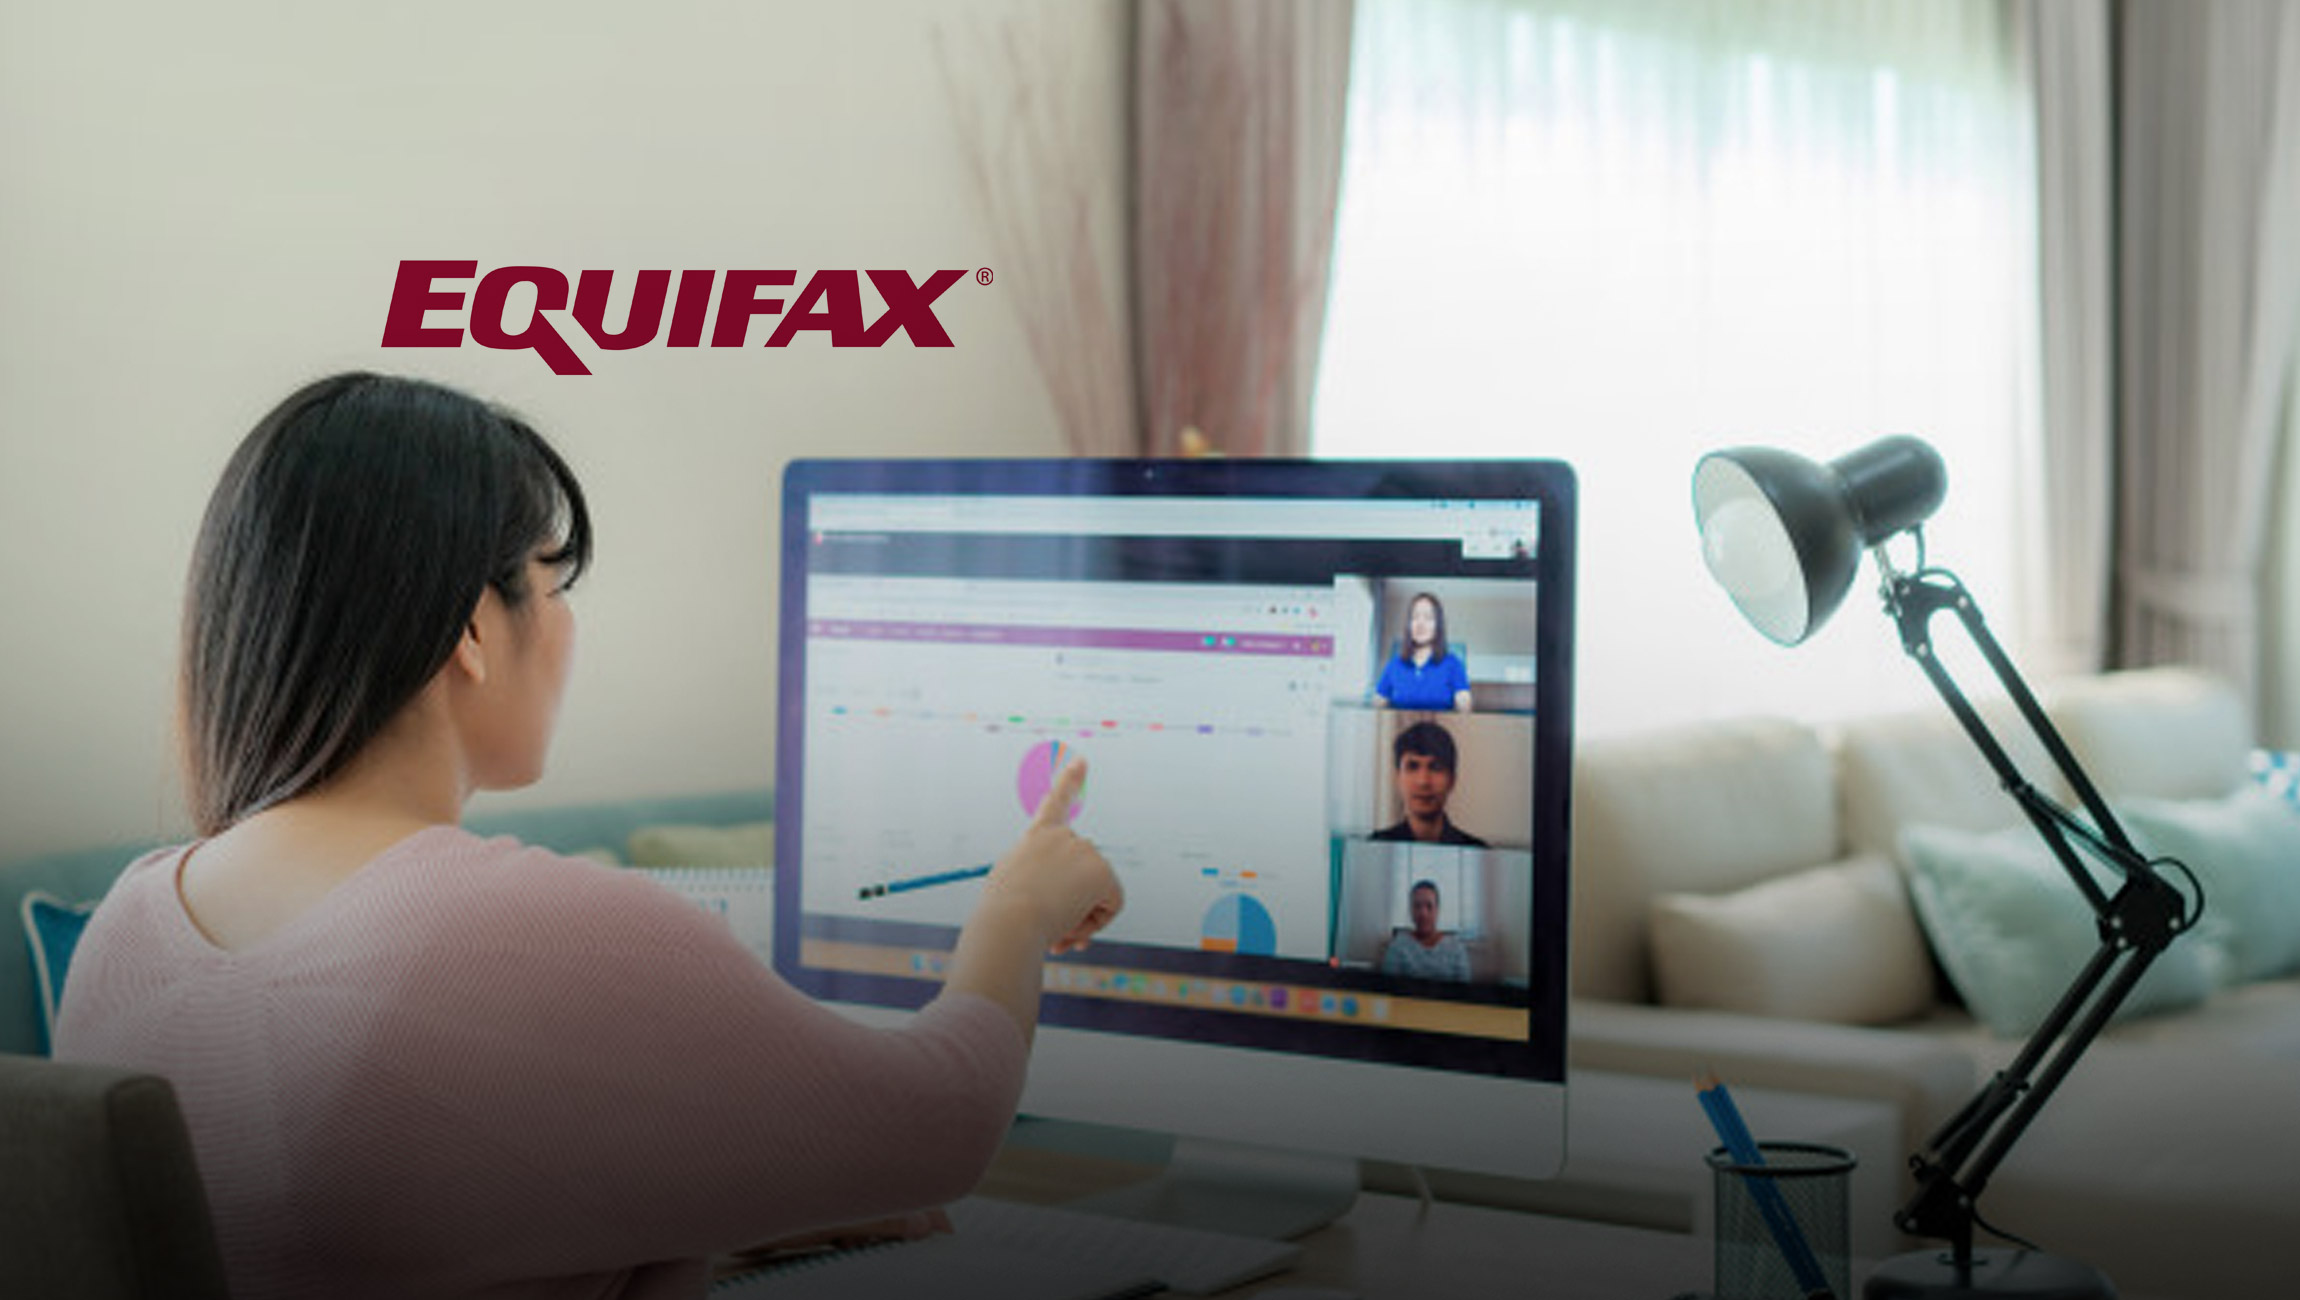 Equifax Introduces New 'Response DIGITAL' Solutions To Bring Businesses Online In Social Distancing Economy